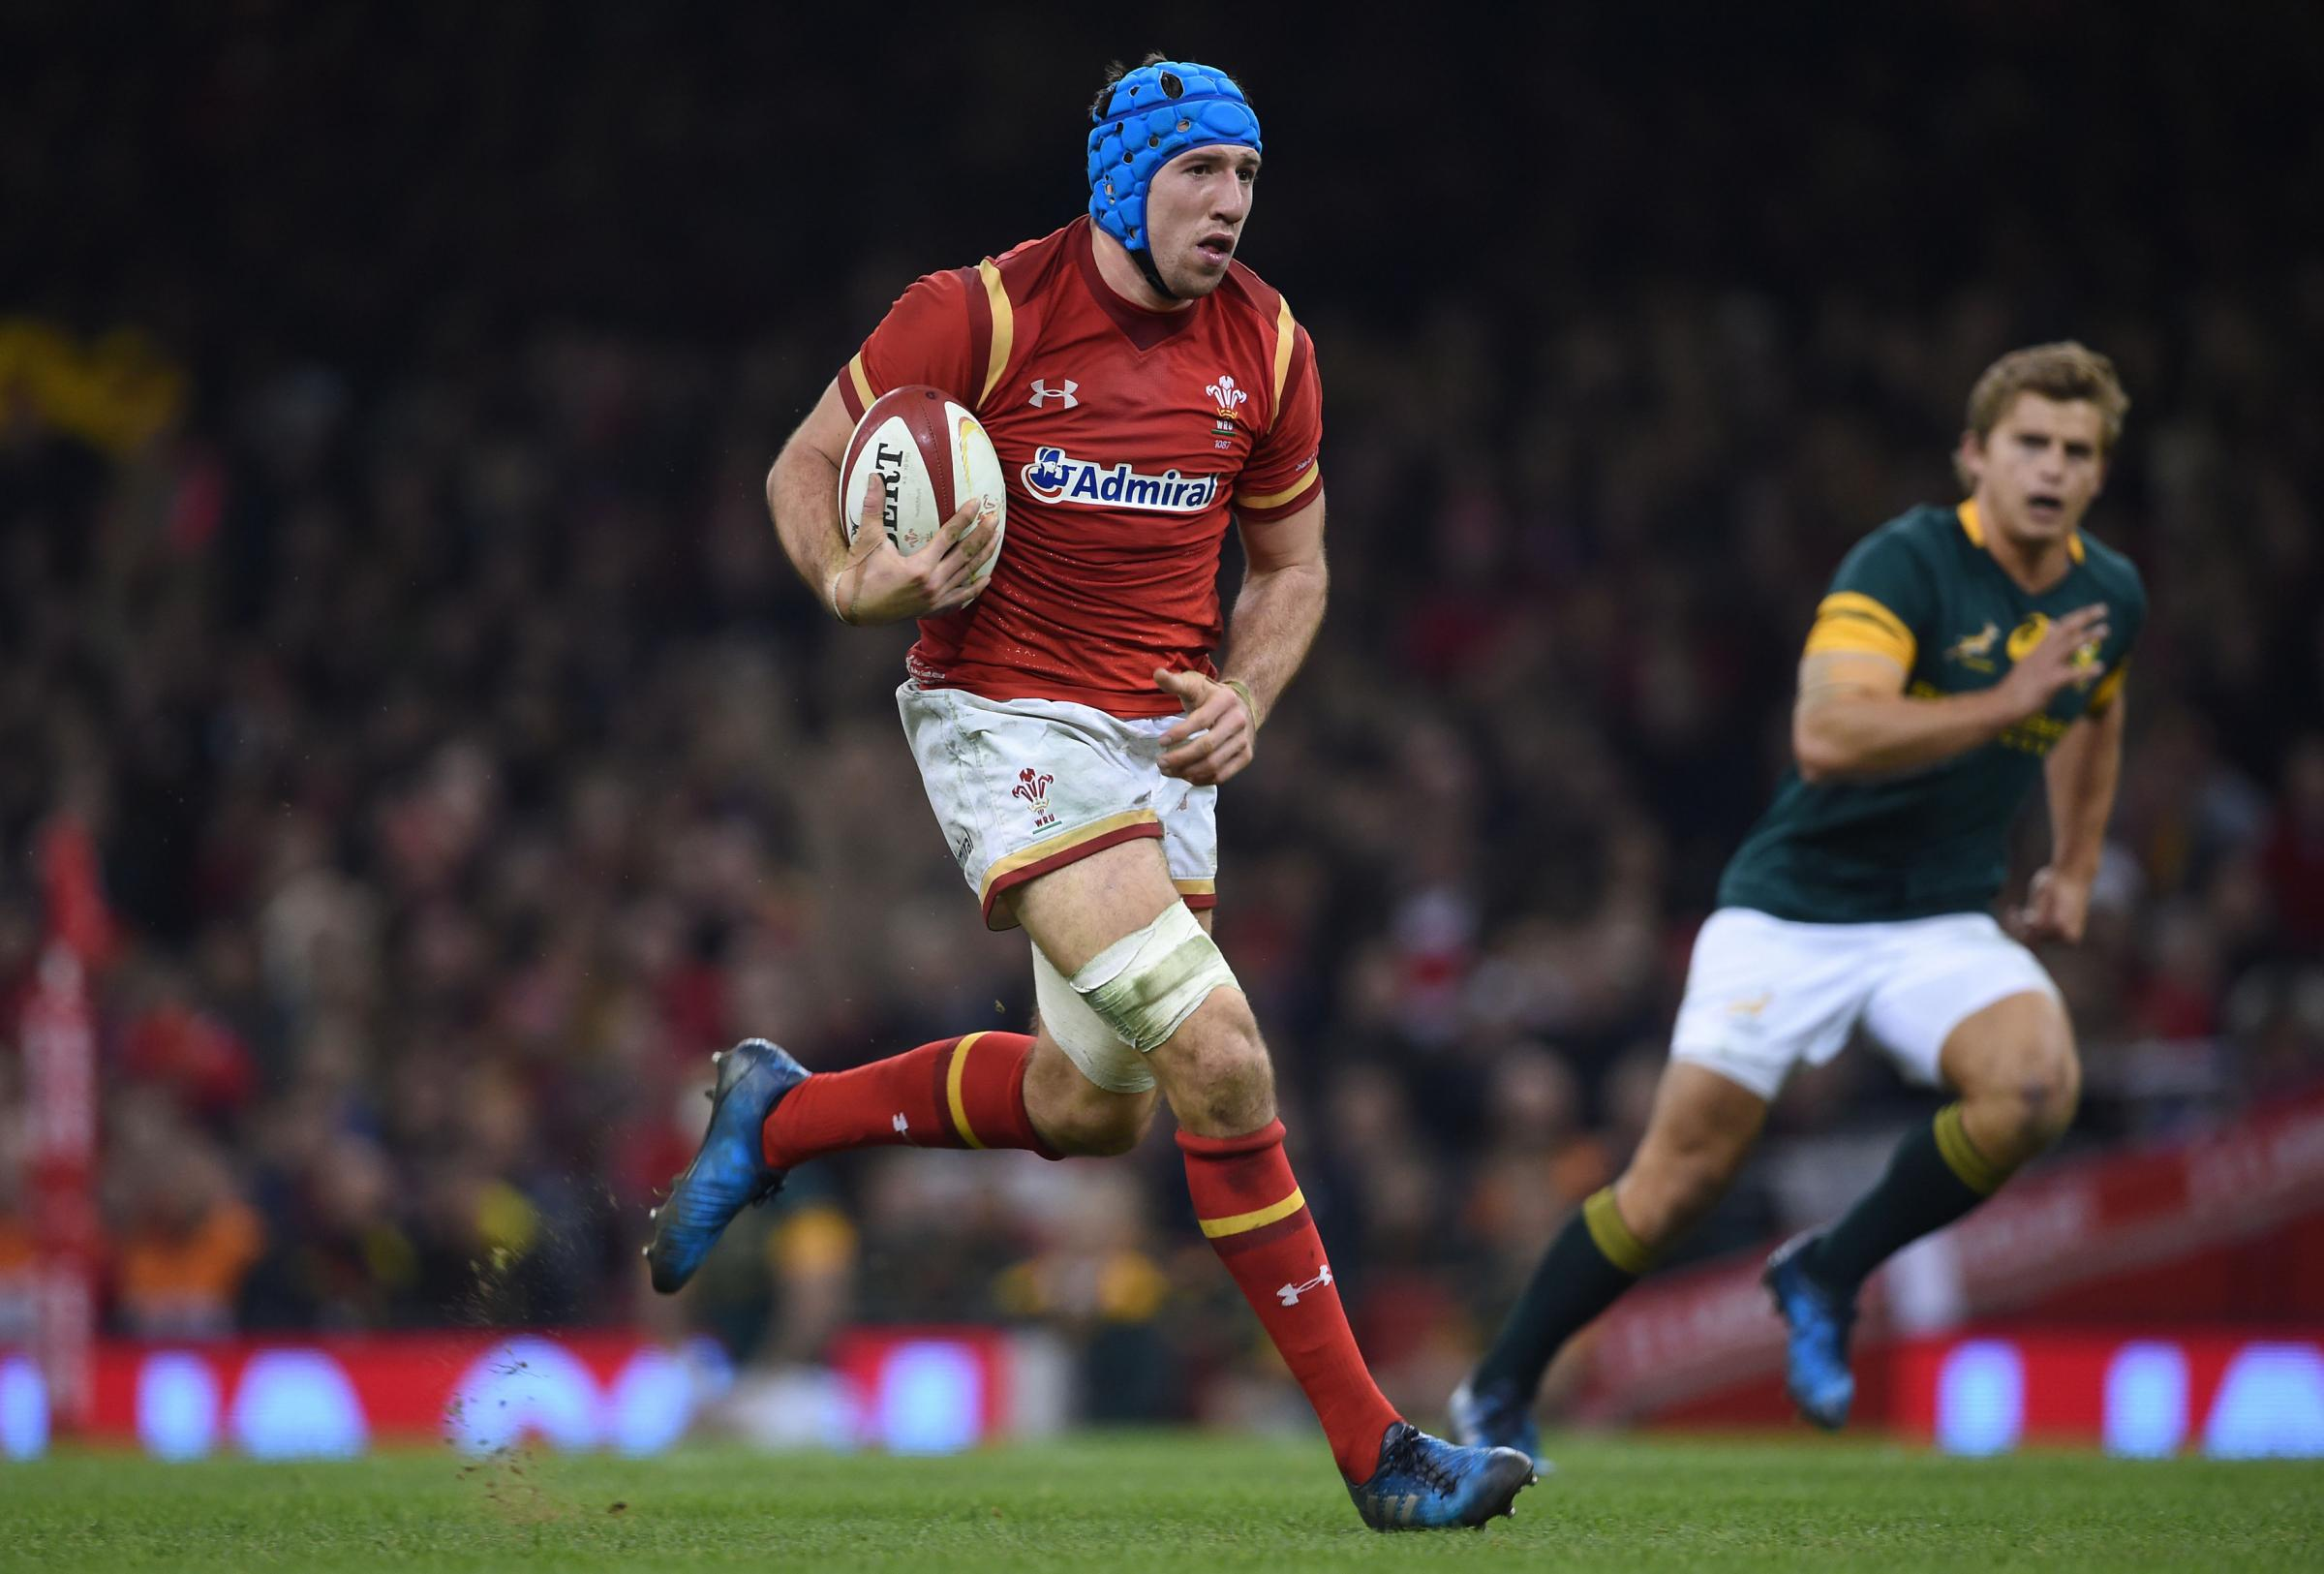 UNDER PRESSURE: Even superb players like Justin Tipuric aren't assured of World Cup selection with Wales